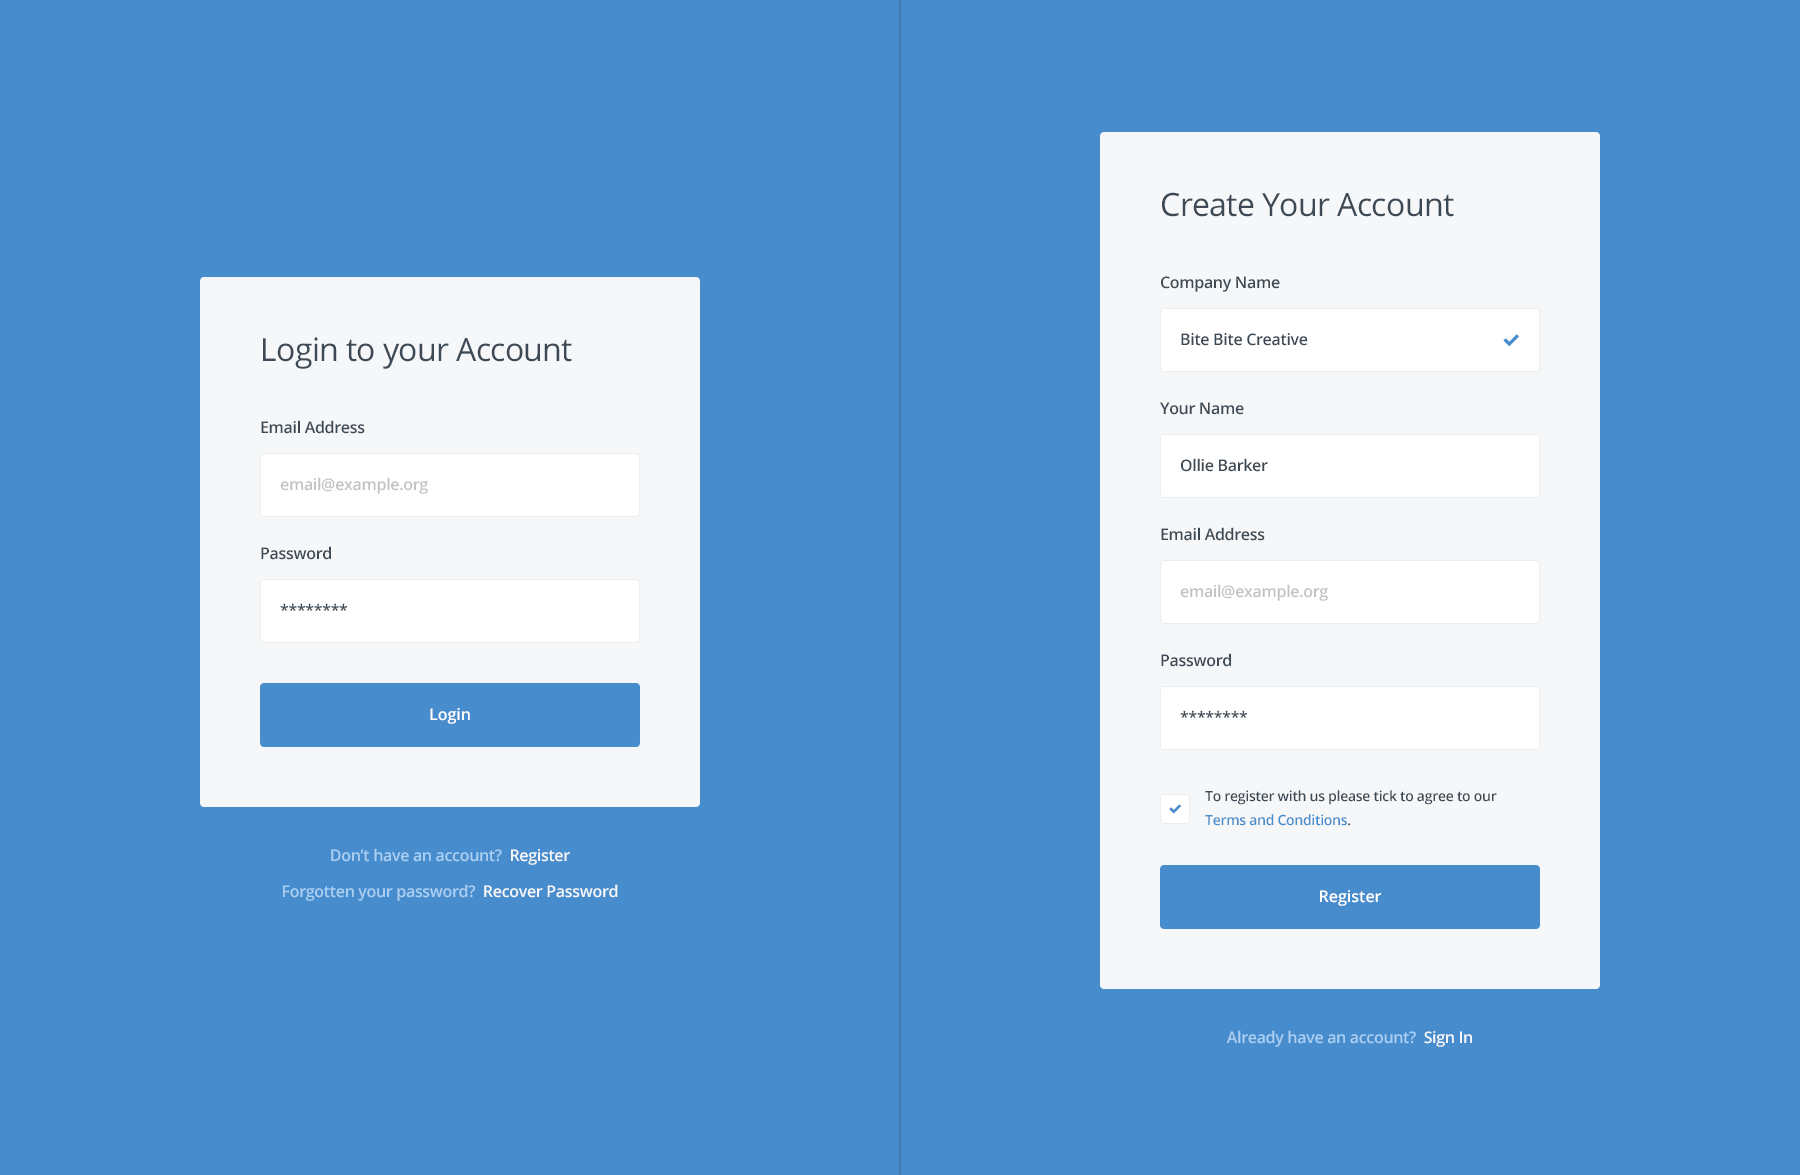 login register full png by ollie barker web development design app design web design login register full png by ollie barker